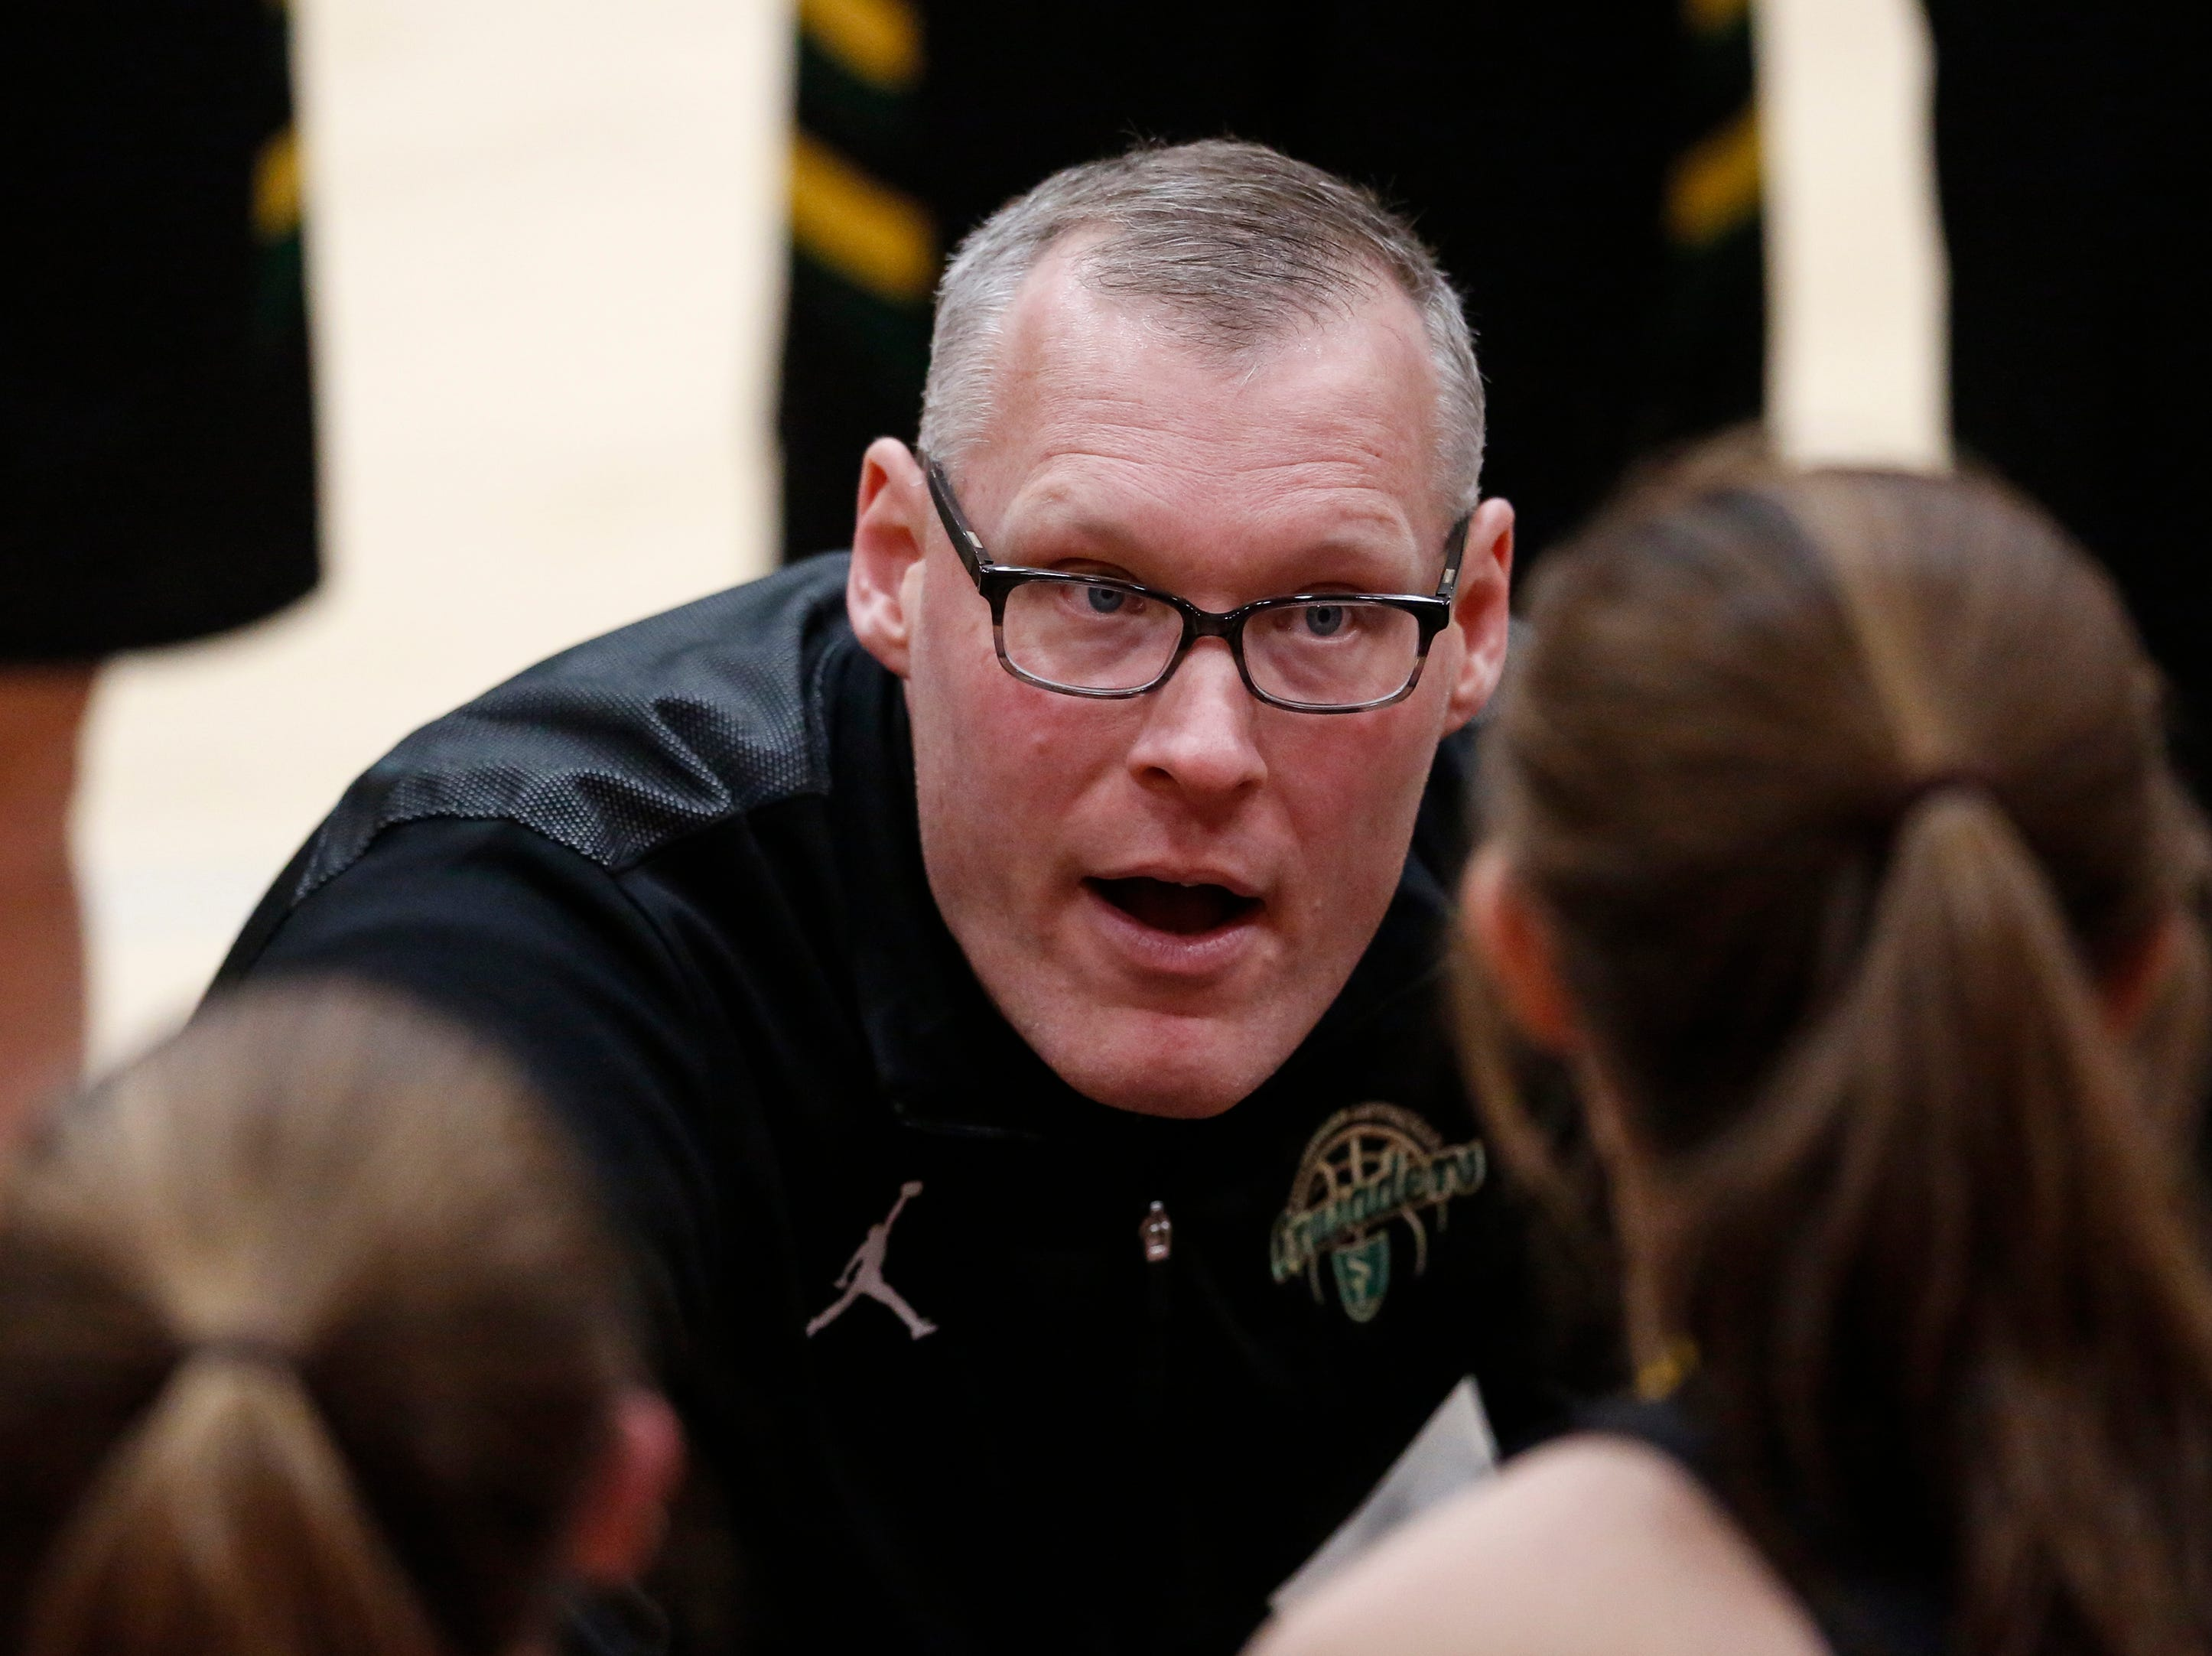 Sheboygan Area Lutheran's head coach Mike Scheele talks to his team during a Big East Conference matchup against Mishicot at Mishicot High School Friday, January 11, 2019, in Mishicot, Wis. Joshua Clark/USA TODAY NETWORK-Wisconsin